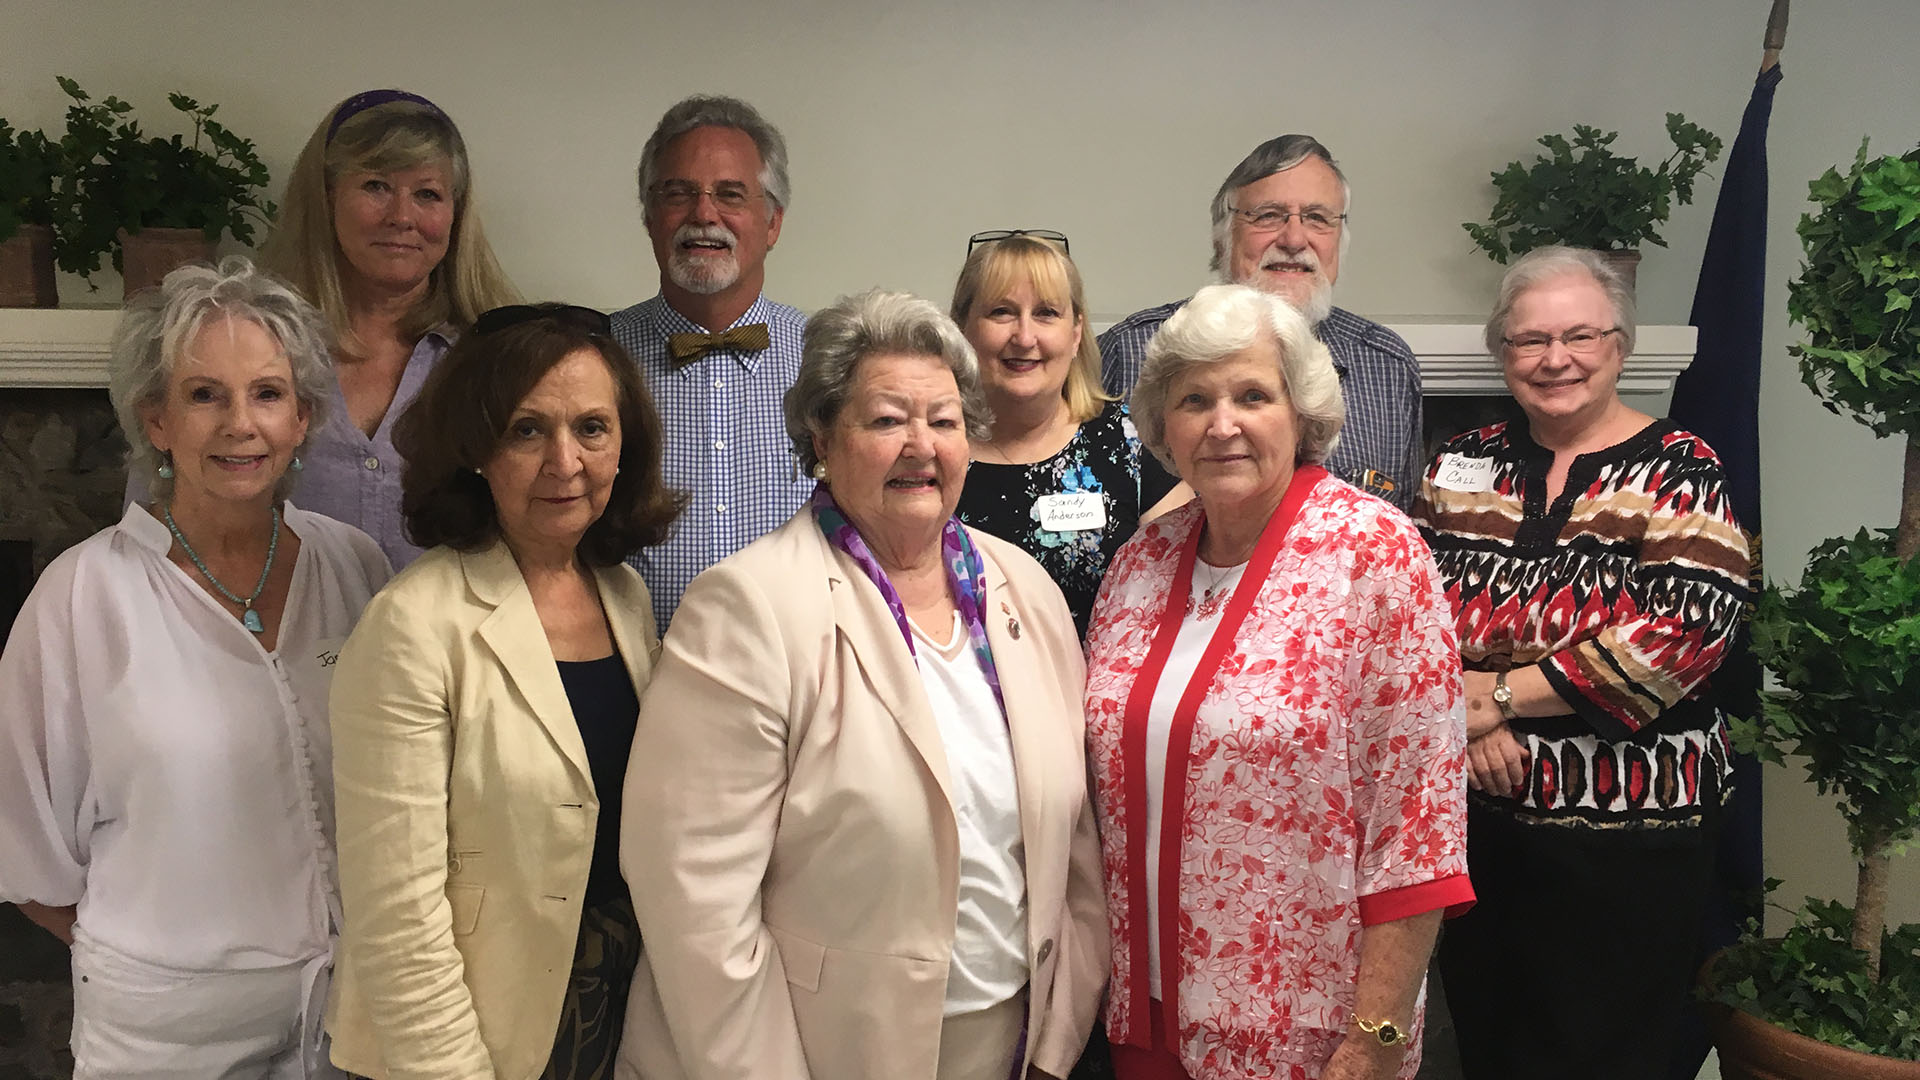 Romanza Johnson, President of KRTA, speaks to Calloway County Retired Teachers Association at the May 7, 2018 meeting in Murray. (L-R) Front : Janis Hicks, Amy Pittman, Romanza Johnson, Ann Yarborough, Carlisle Co. RTA. (L-R) Back : Pat Seiber, Marshall Ward, Sandy Anderson, Ken Wolf, and Brenda Call.